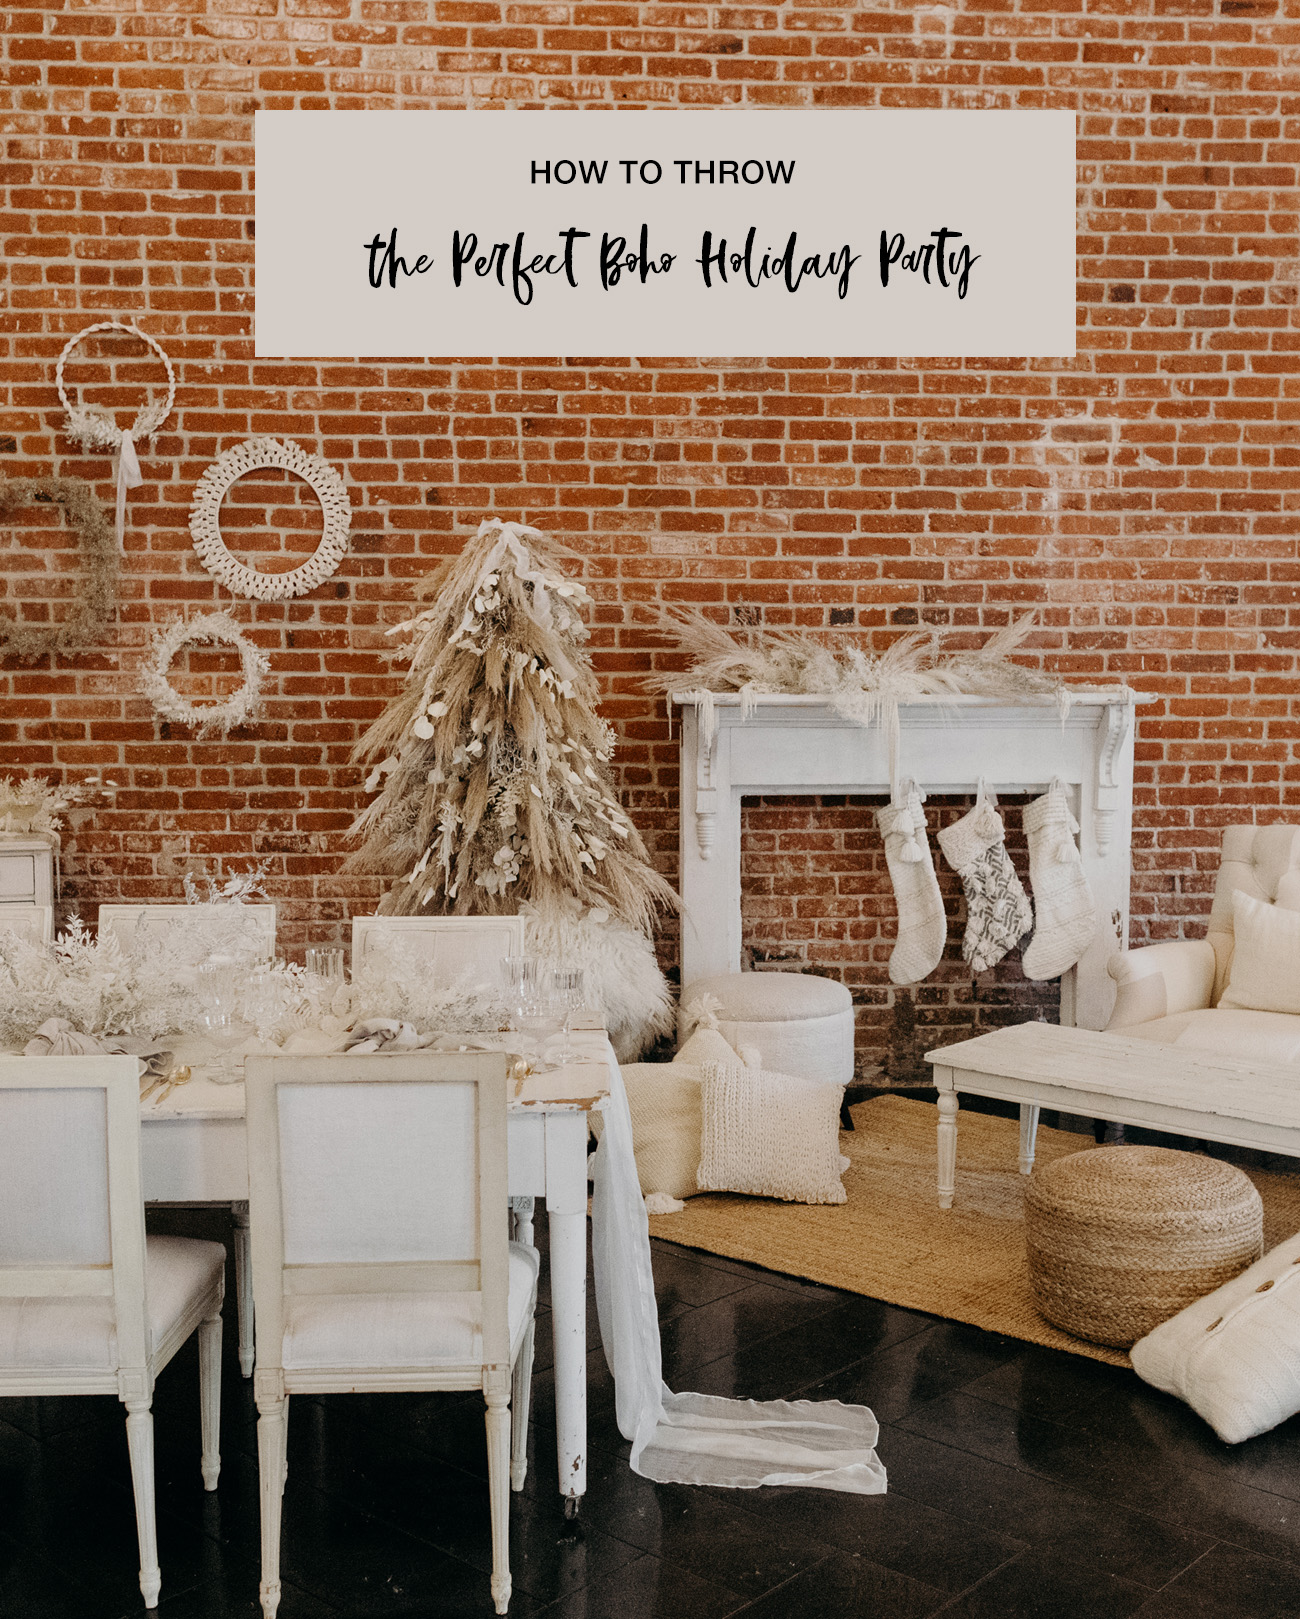 How to Throw the Perfect Boho Holiday Party